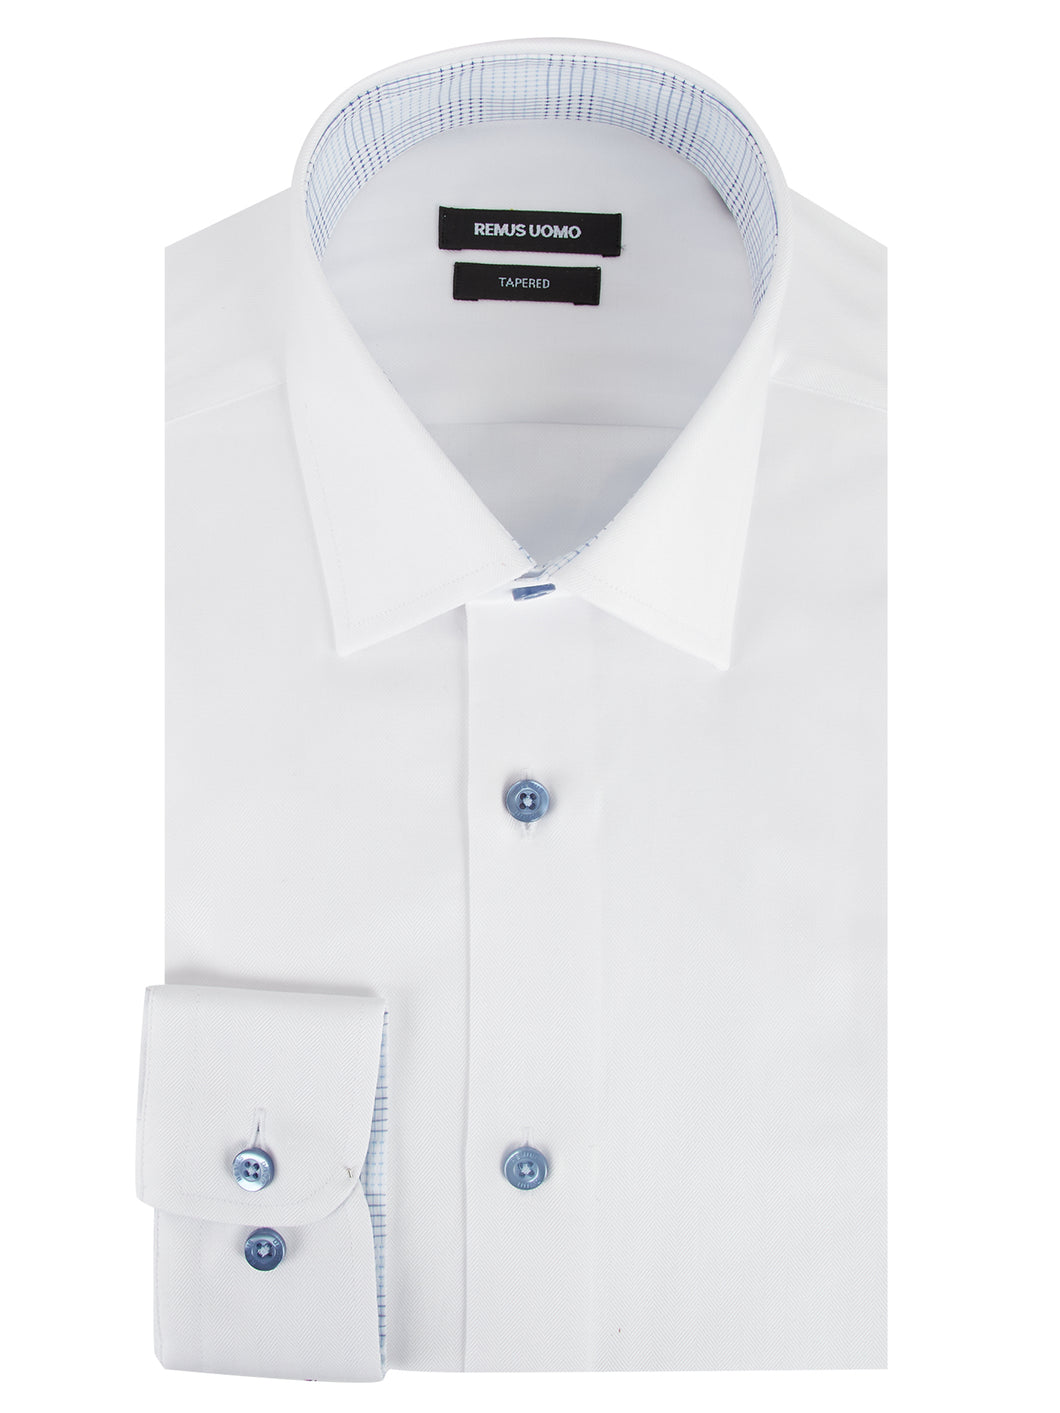 Remus Uomo Plain Herringbone Shirt White